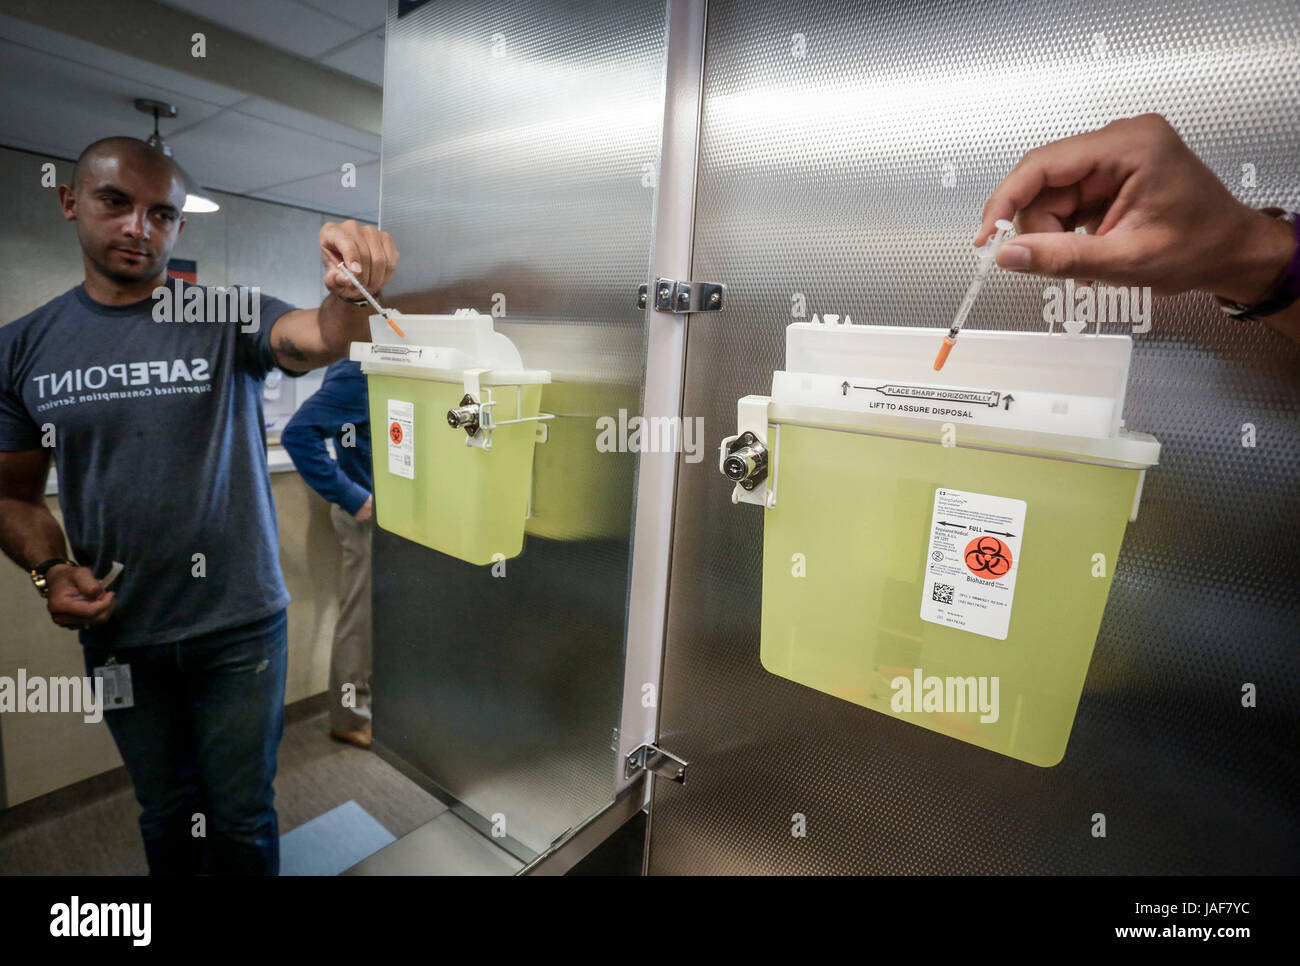 (170606) -- VANCOUVER, June 6, 2017 (Xinhua) -- A health authority staff member showcases a syringe disposal box - Stock Image